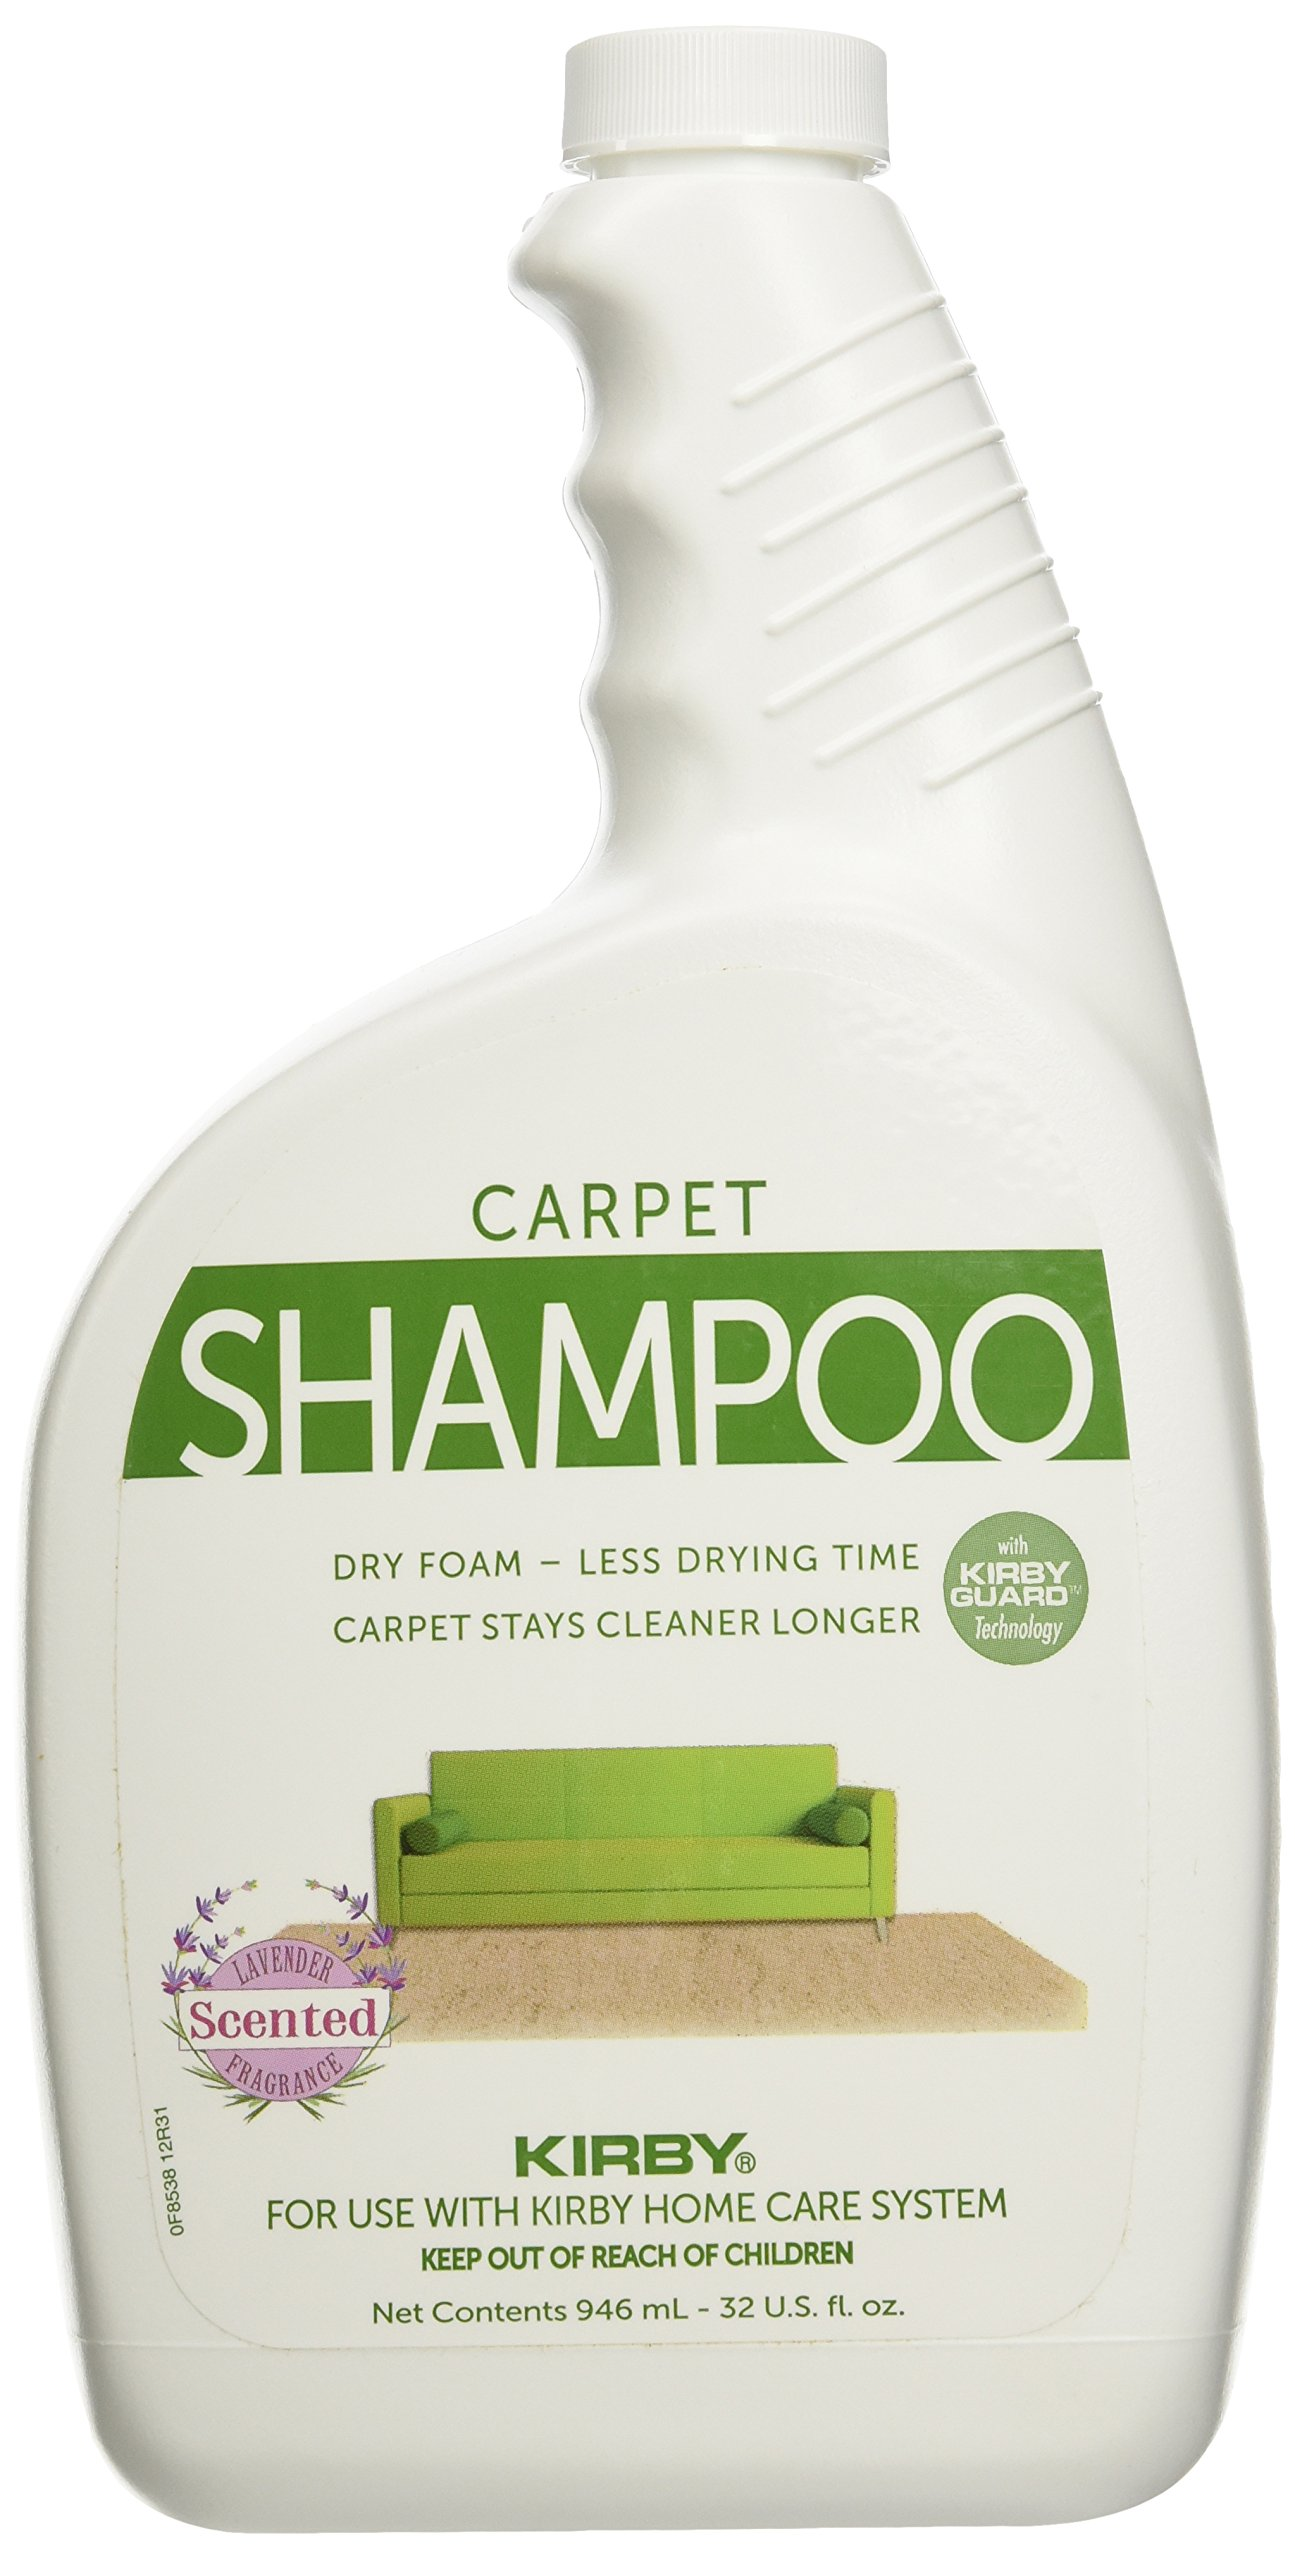 Kirby Vacuum Cleaner Quart Lavender Scented Carpet Rug Shampoo 32oz by Kirby